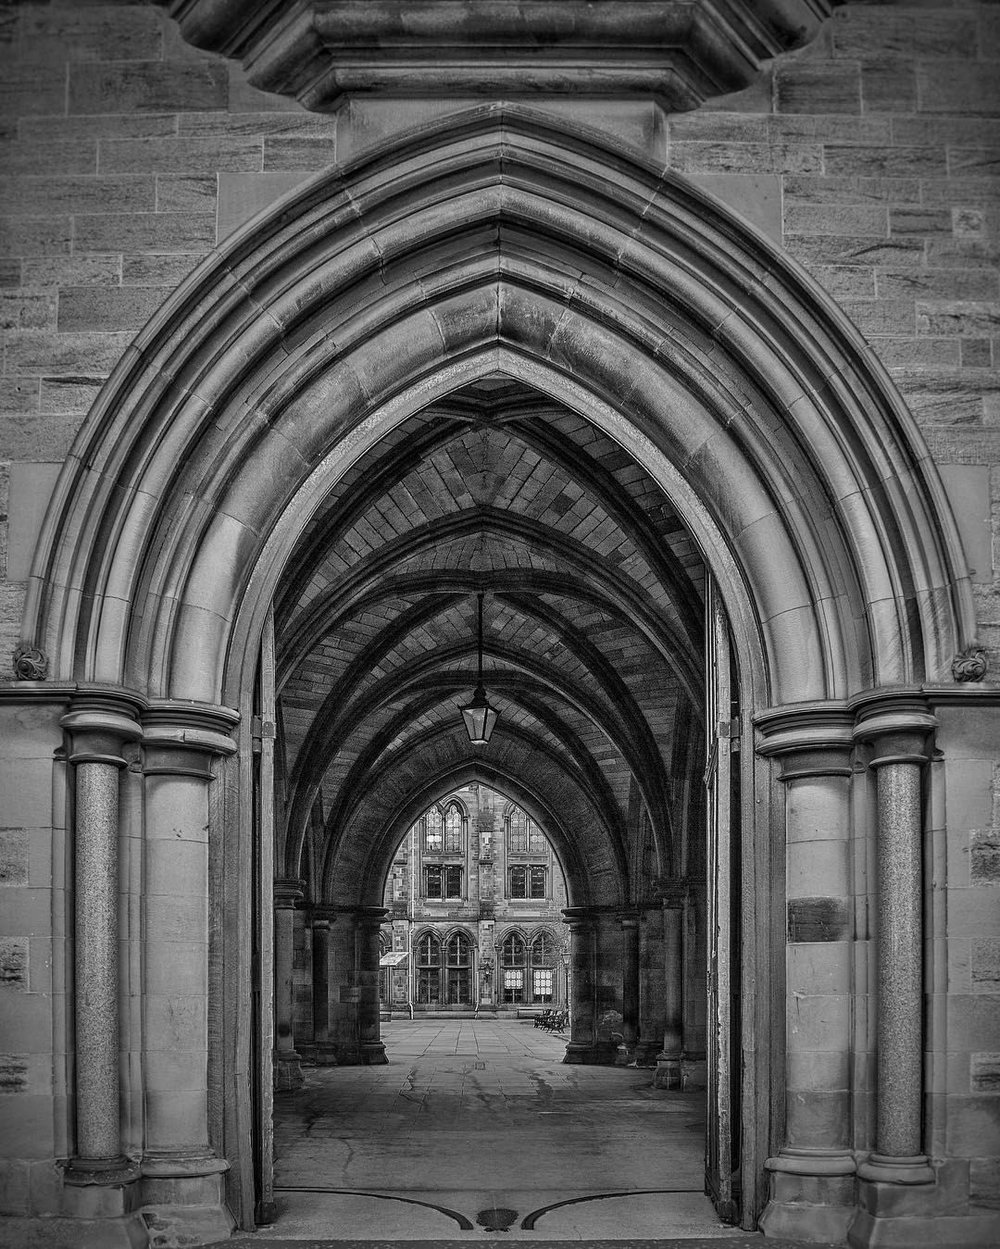 The Archway - A view from the Archway to the Quadrangle.